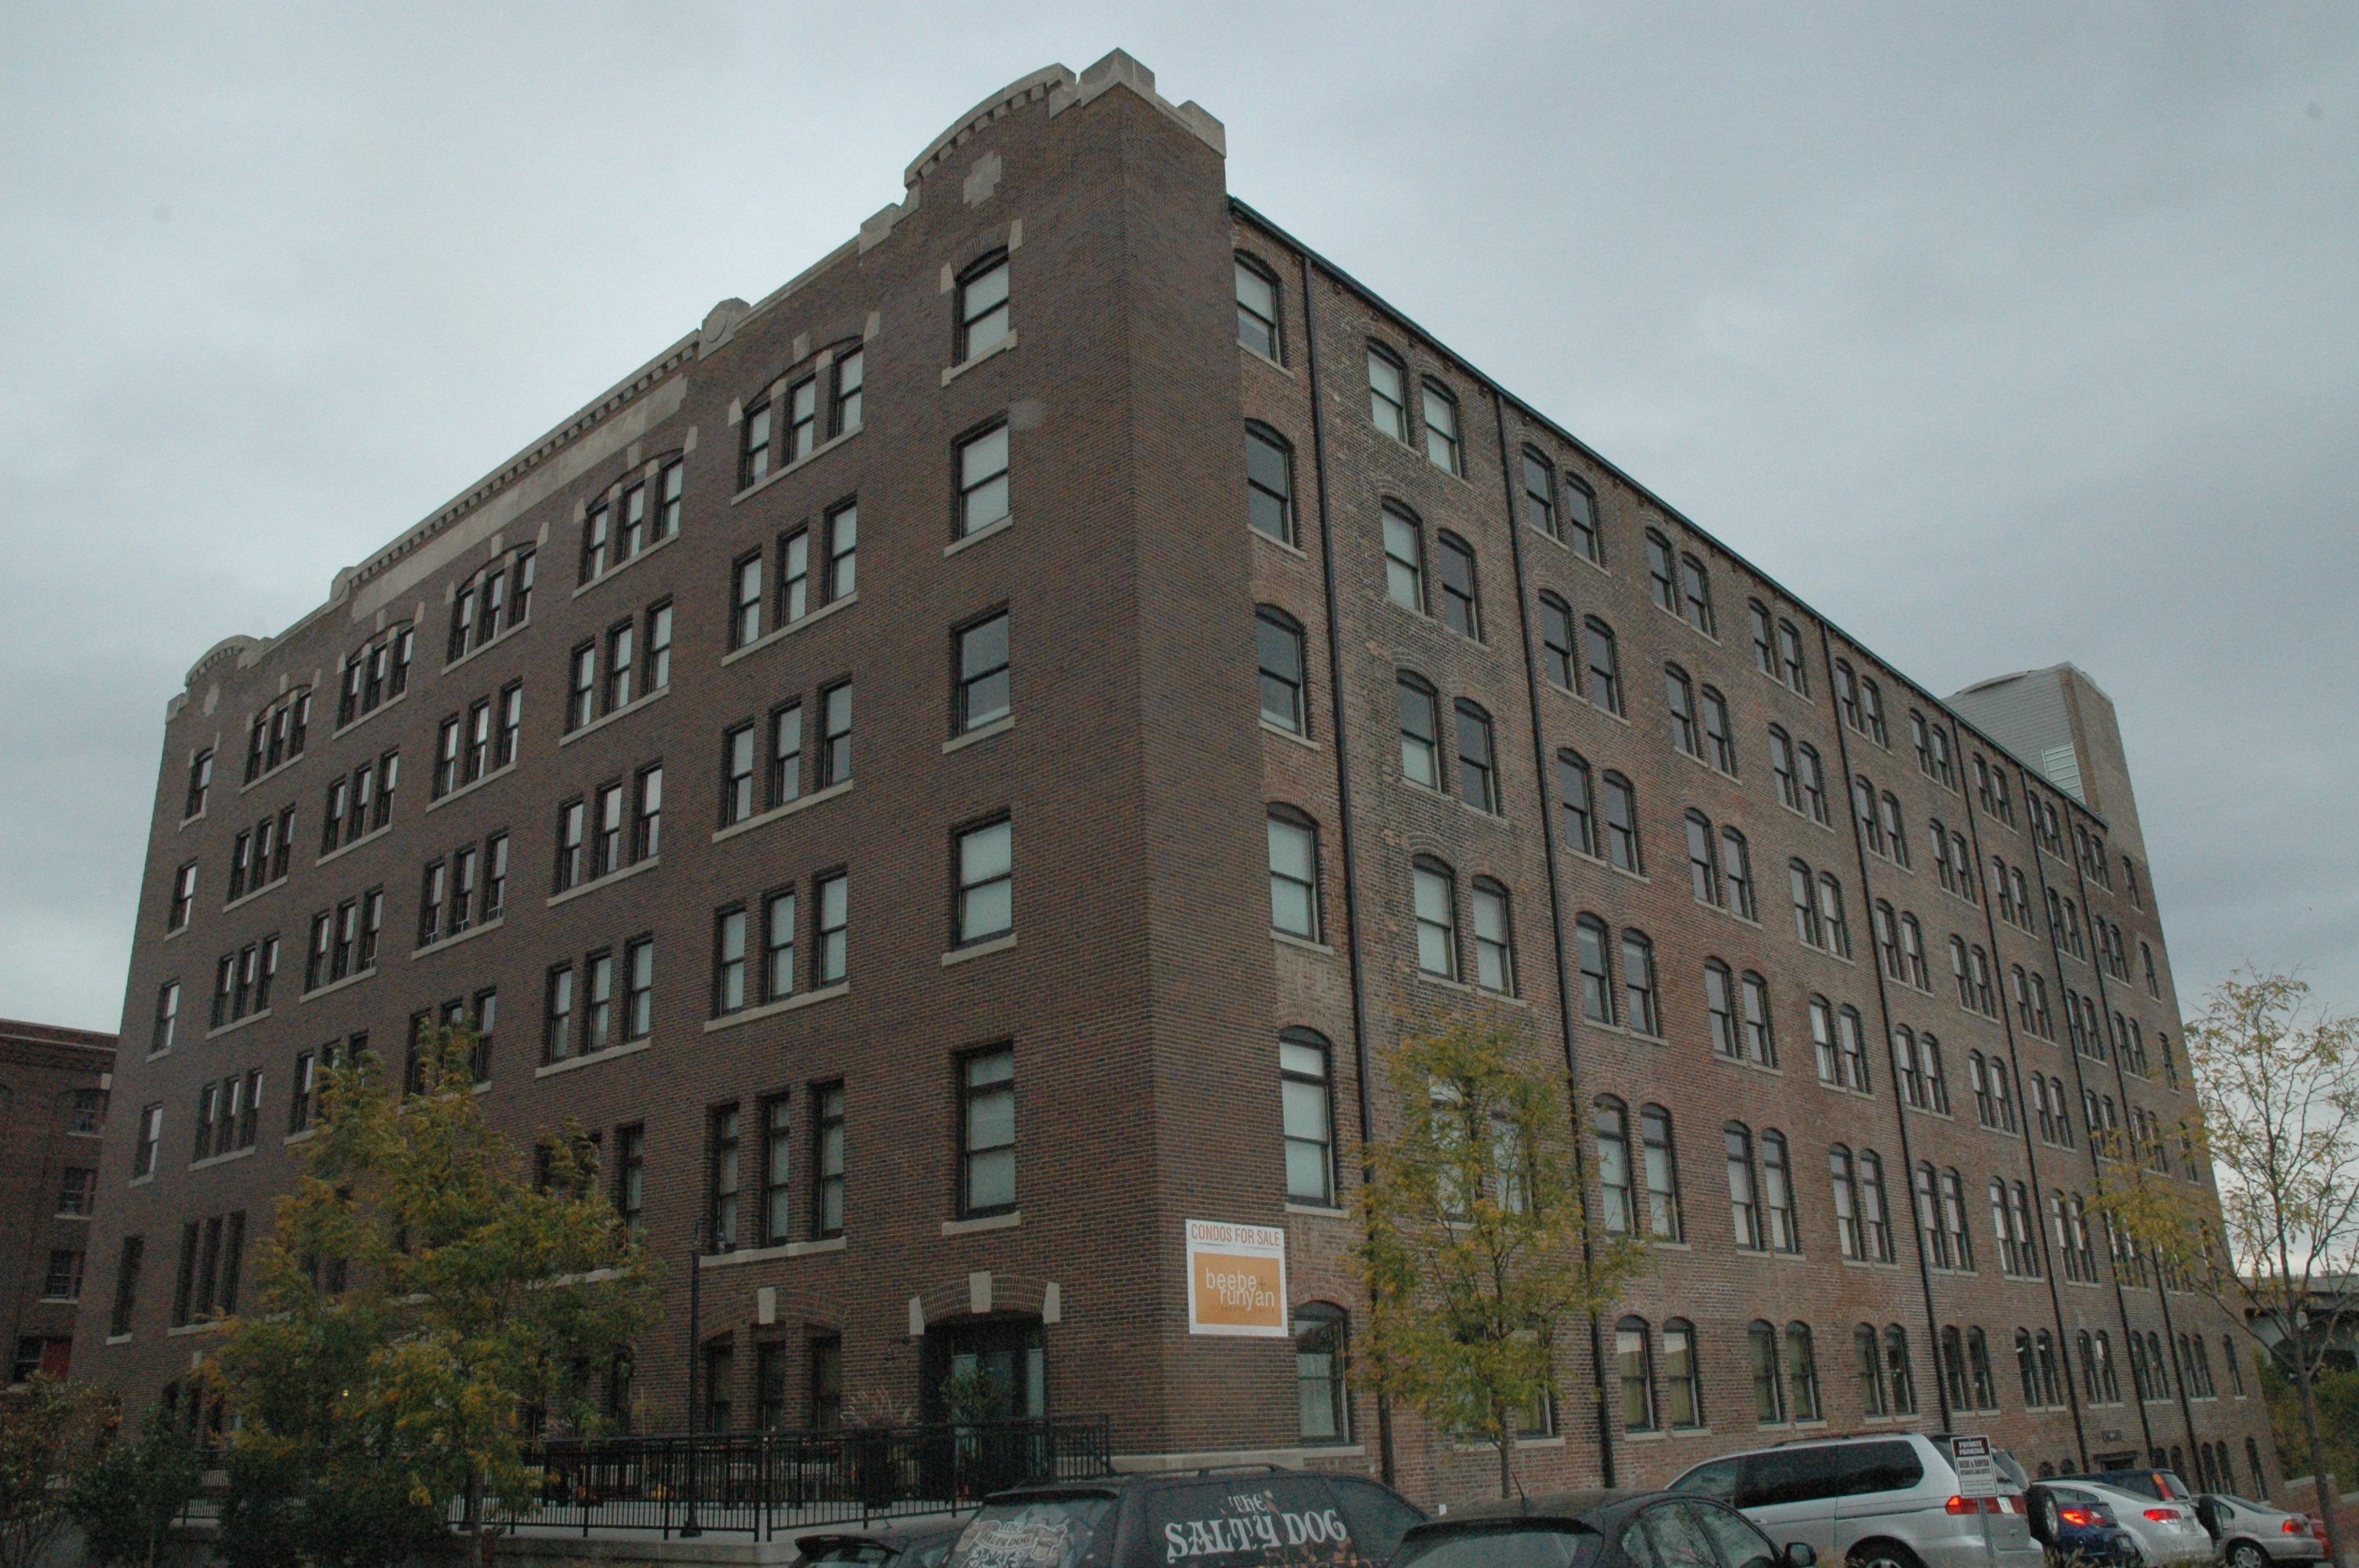 The former factory is now home to loft-style apartments.